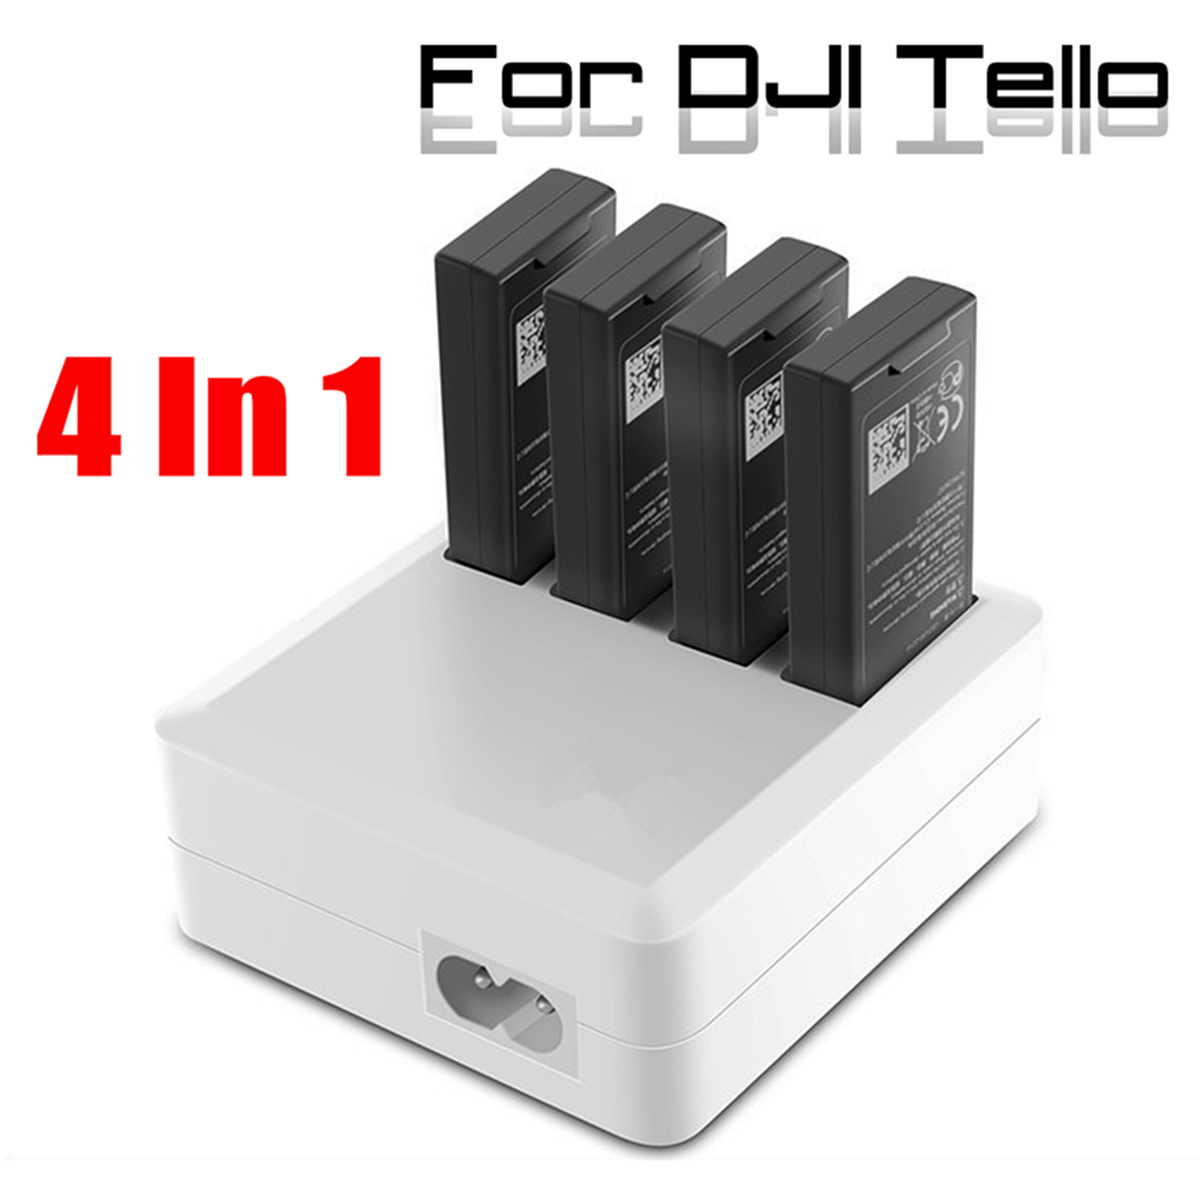 4-in1-multi-battery-charger-hub-rc-intelligent-quick-charging-for-font-b-dji-b-font-tello-font-b-drone-b-font-us-plug-camera-font-b-drones-b-font-accessories